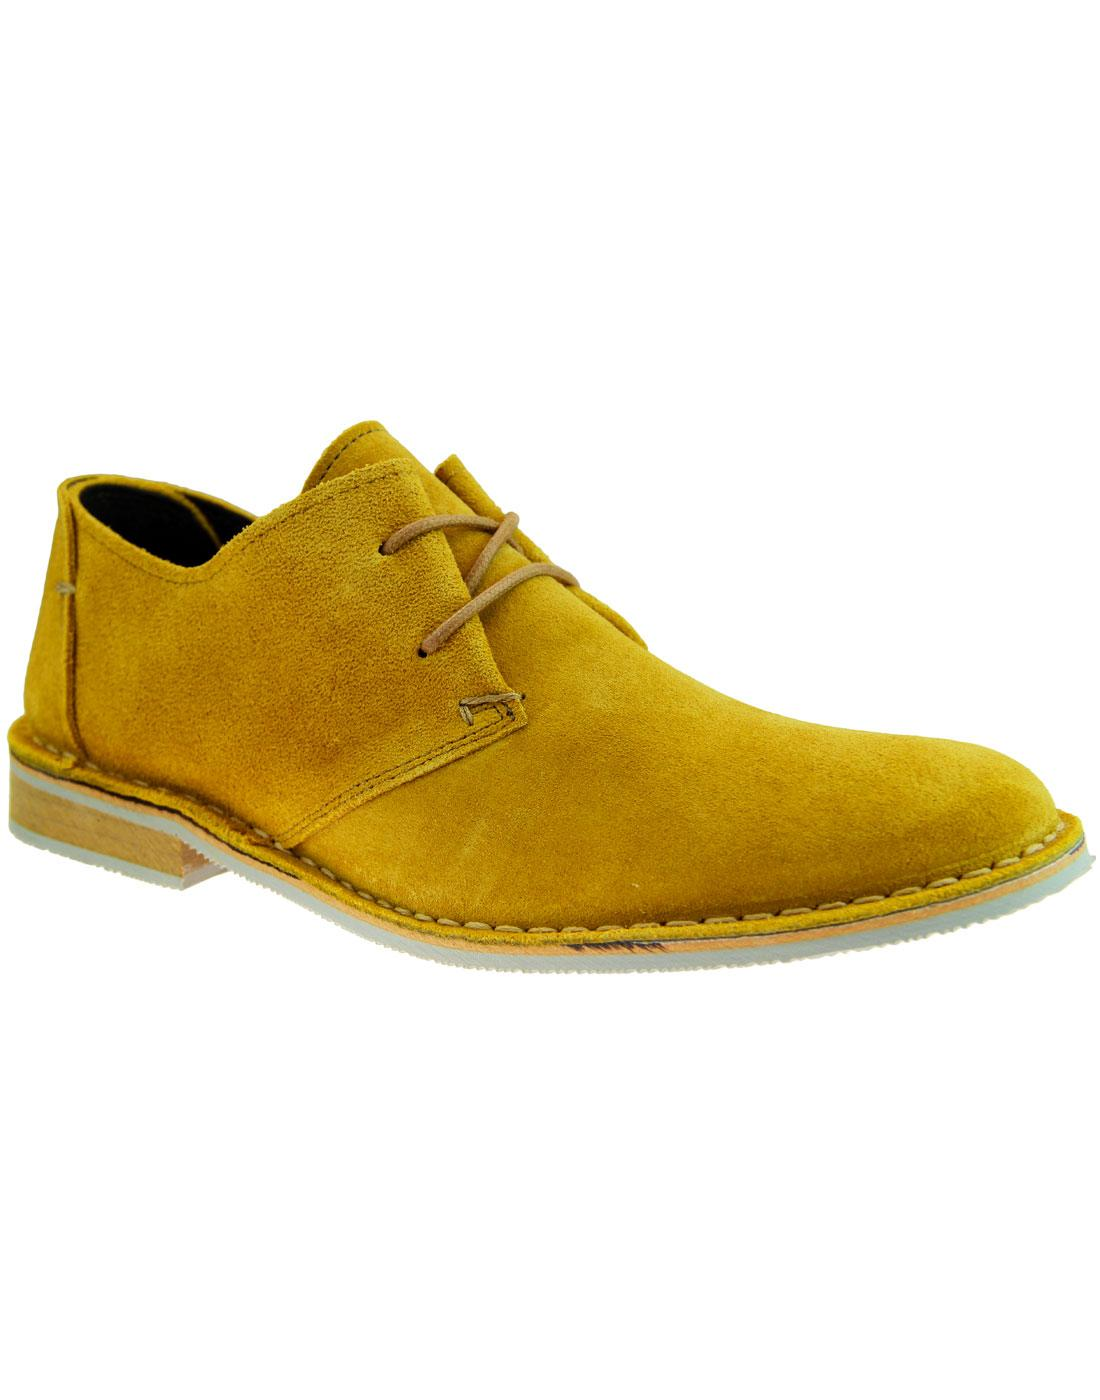 Franklin IKON Retro Mod Suede Desert Shoes OCHRE